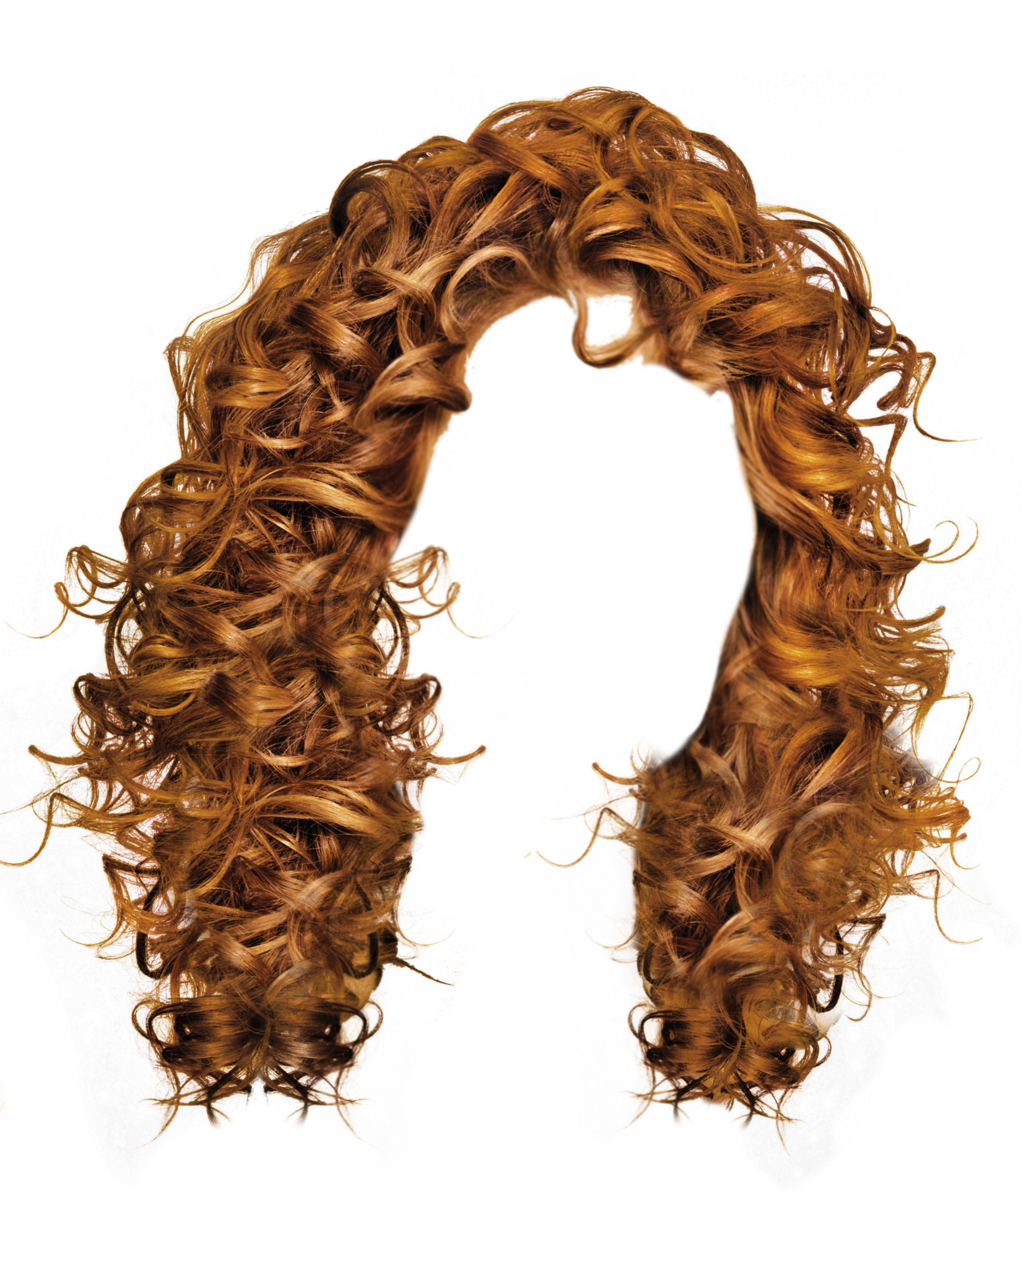 Windy hair png. Stickers women transparent